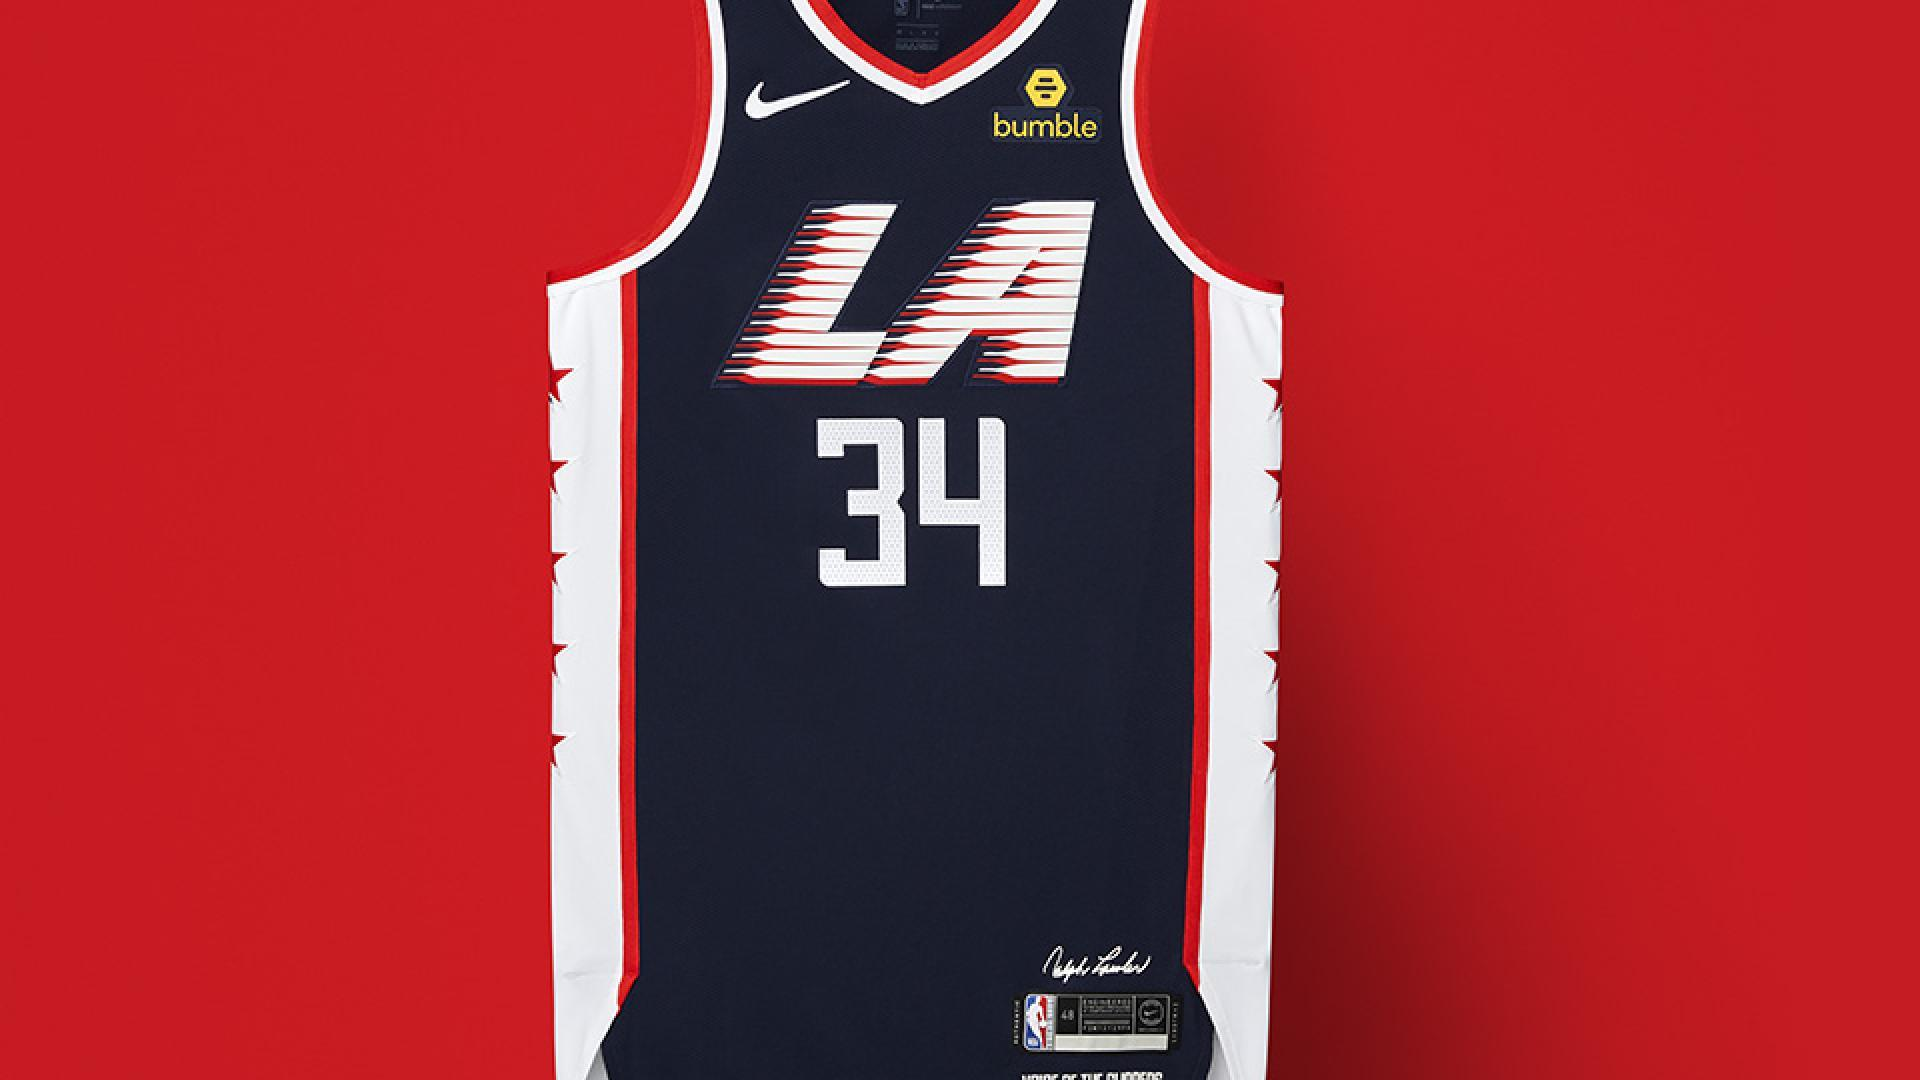 1467c1638 City Edition uniforms  Western Conference teams in 2018-19